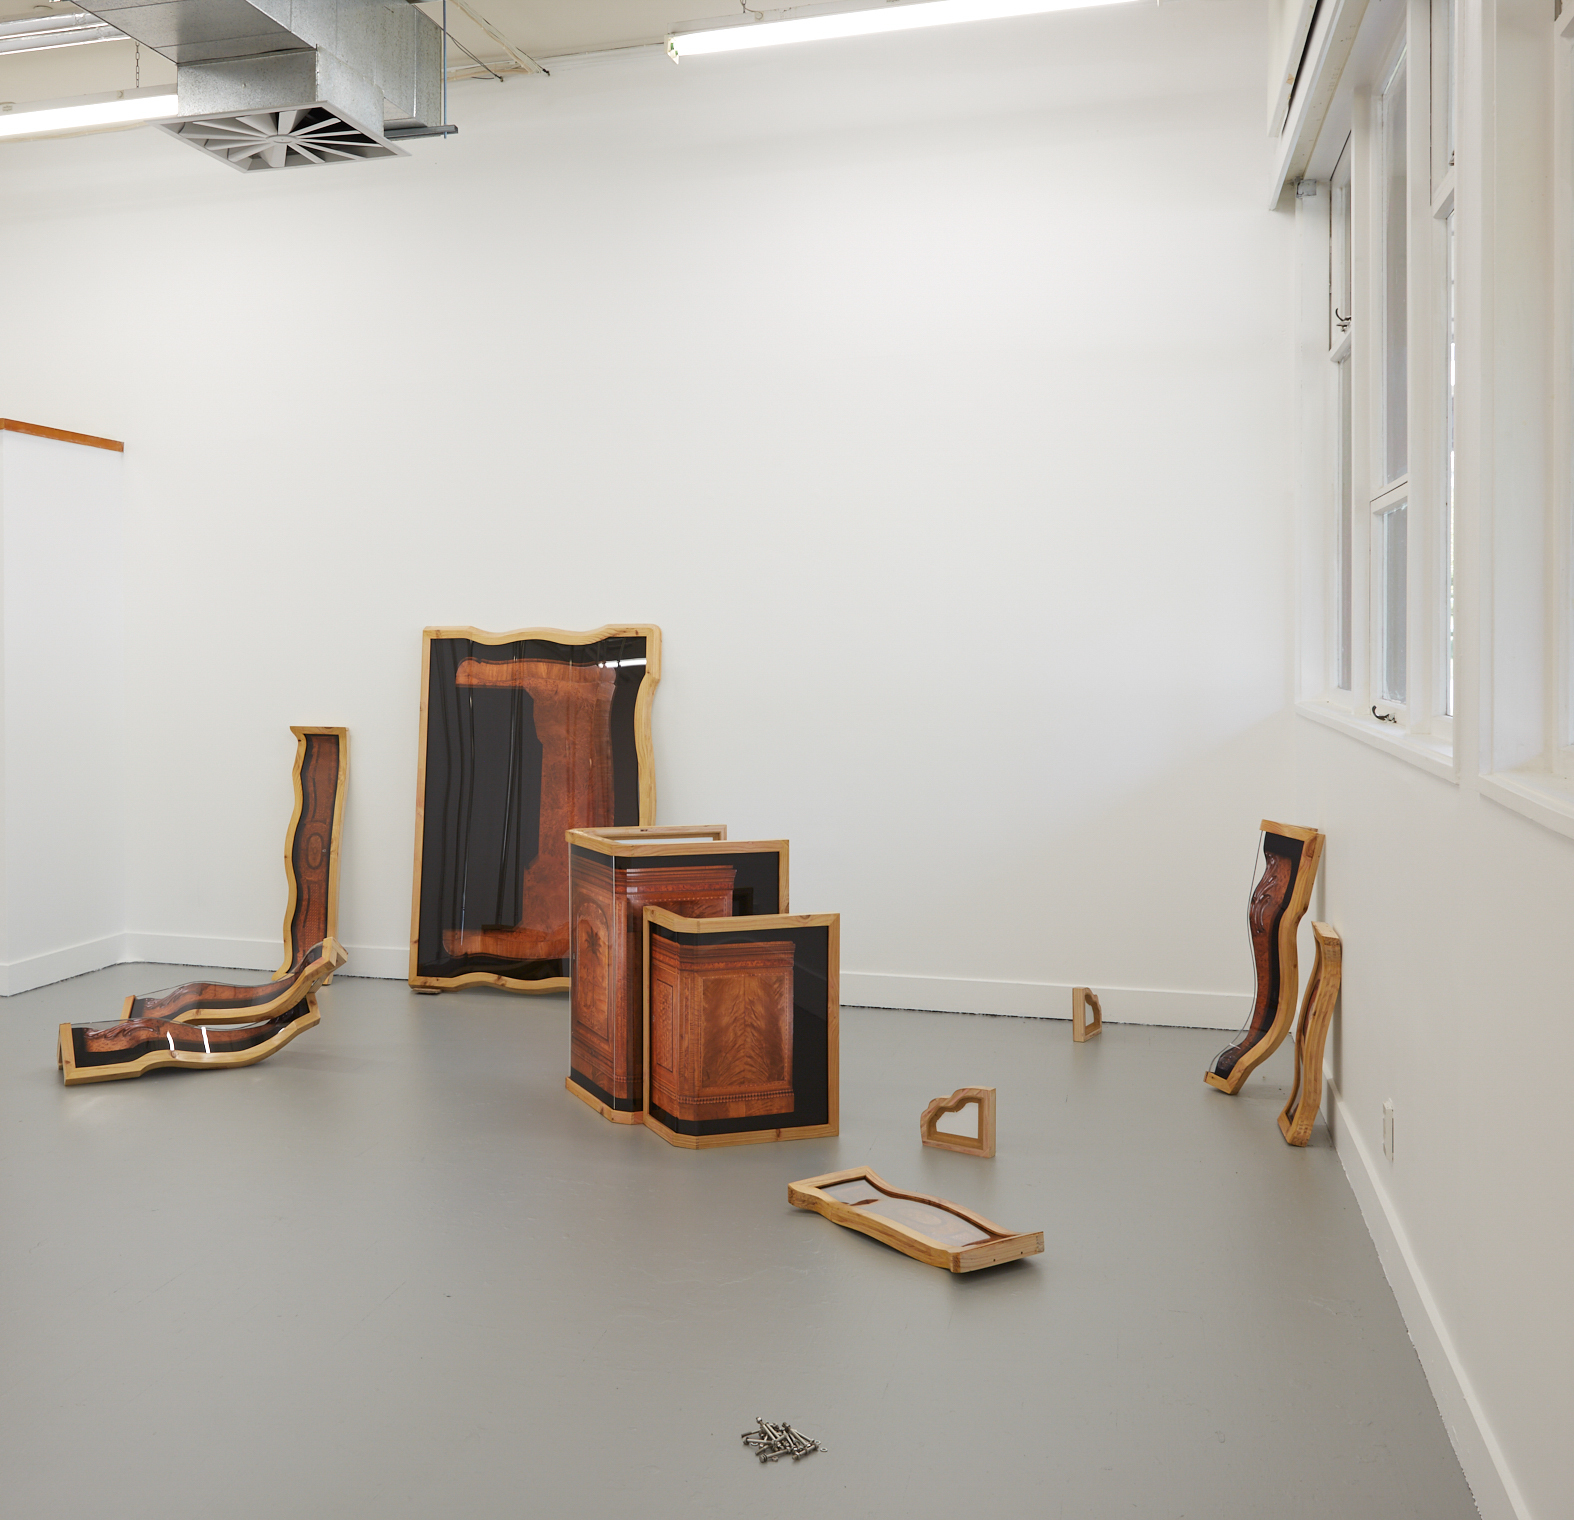 The time travelling object, installation view.